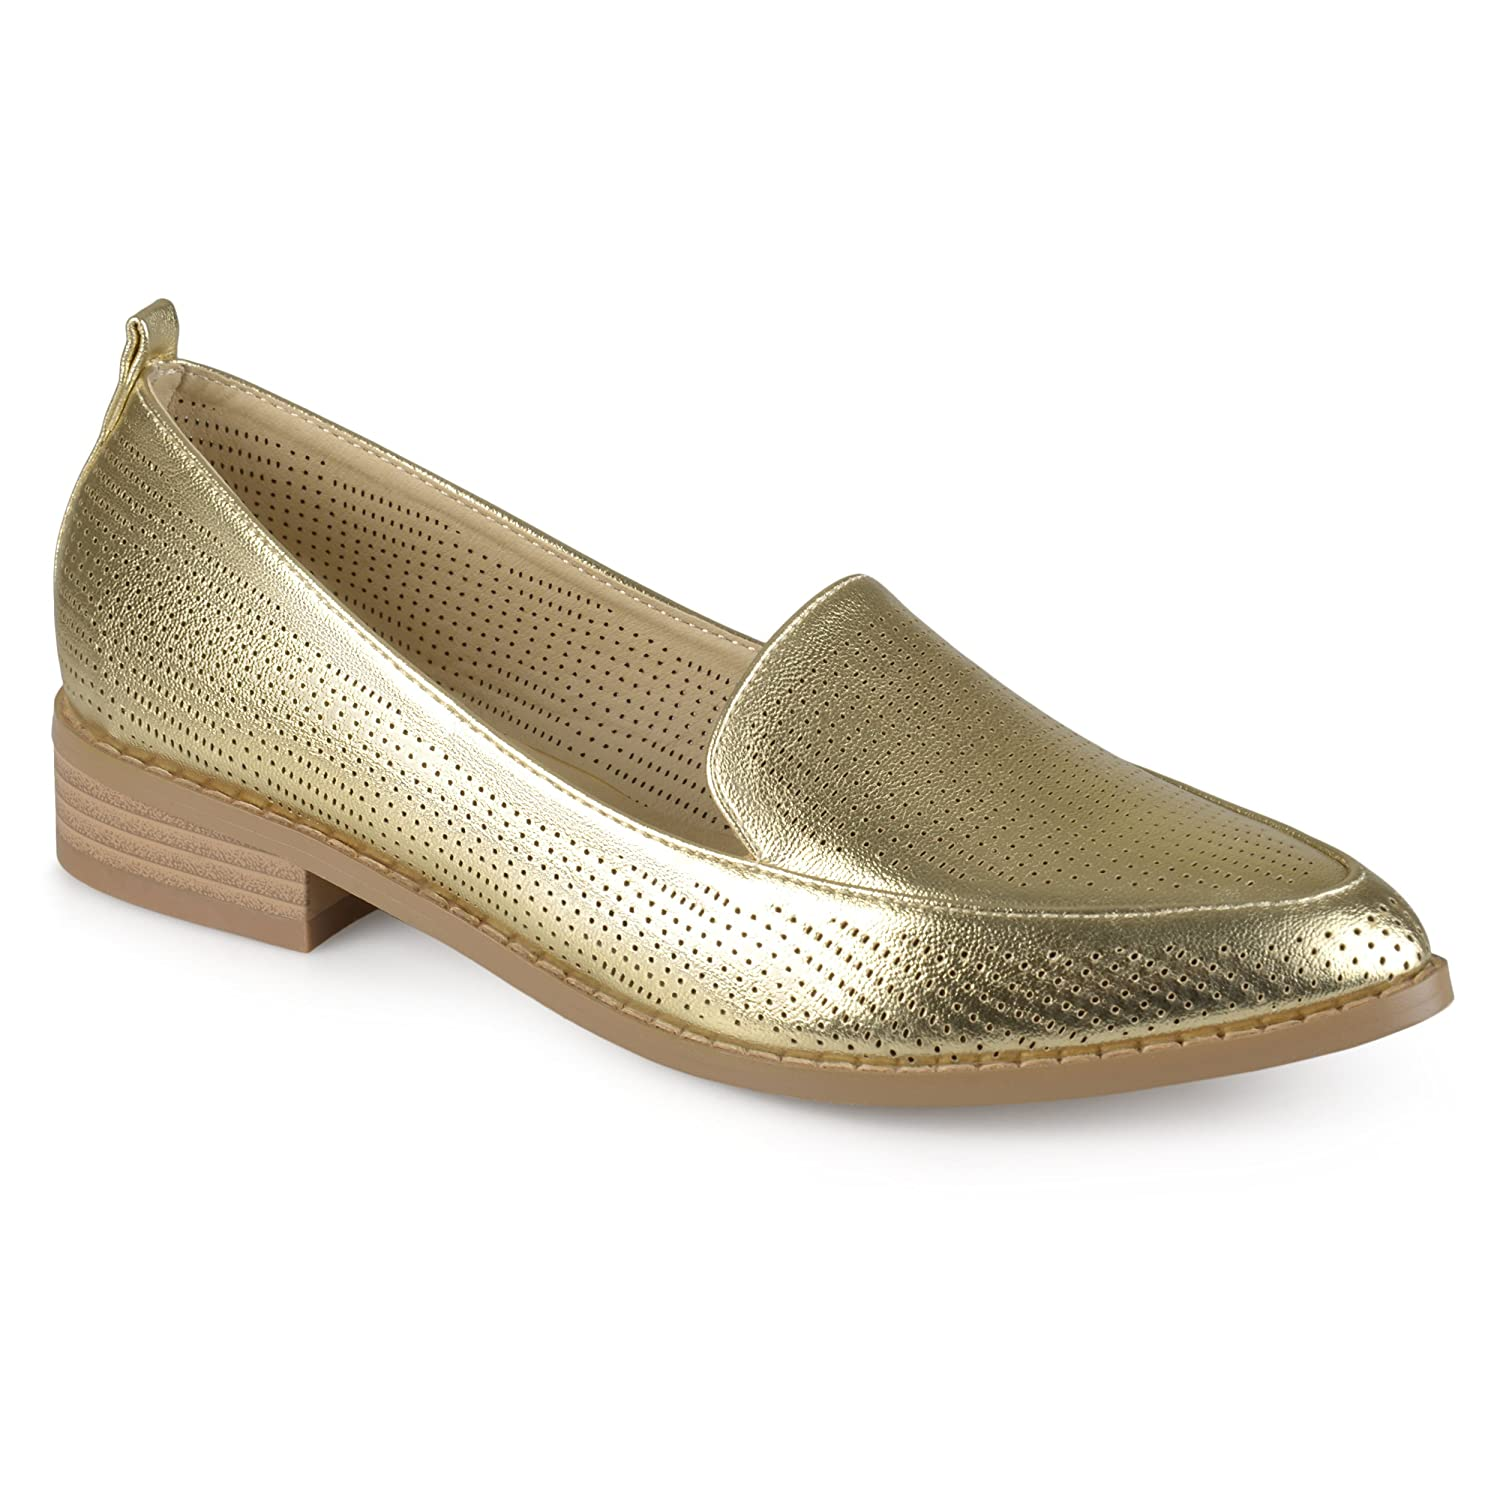 bb31e25fb11 Journee Collection Womens Laser Cut Stacked Heel Pointed Toe Loafers